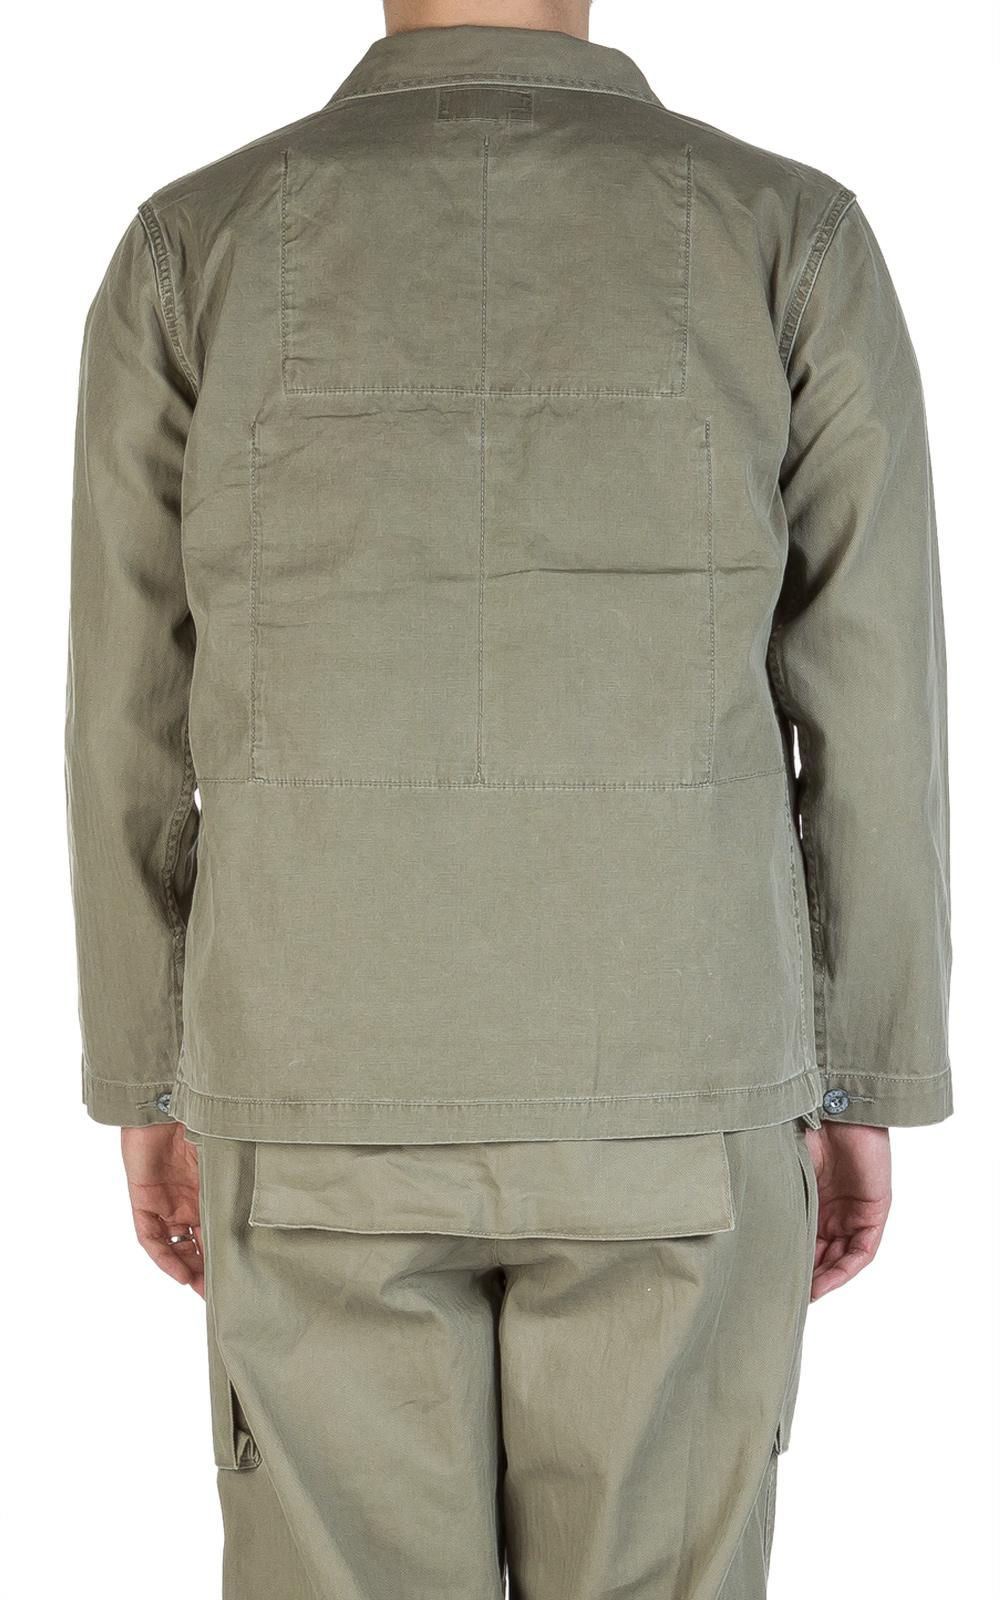 6d51112ae294 Nigel Cabourn Lybro Mixed Field Jacket Nam Green in Green for Men - Lyst